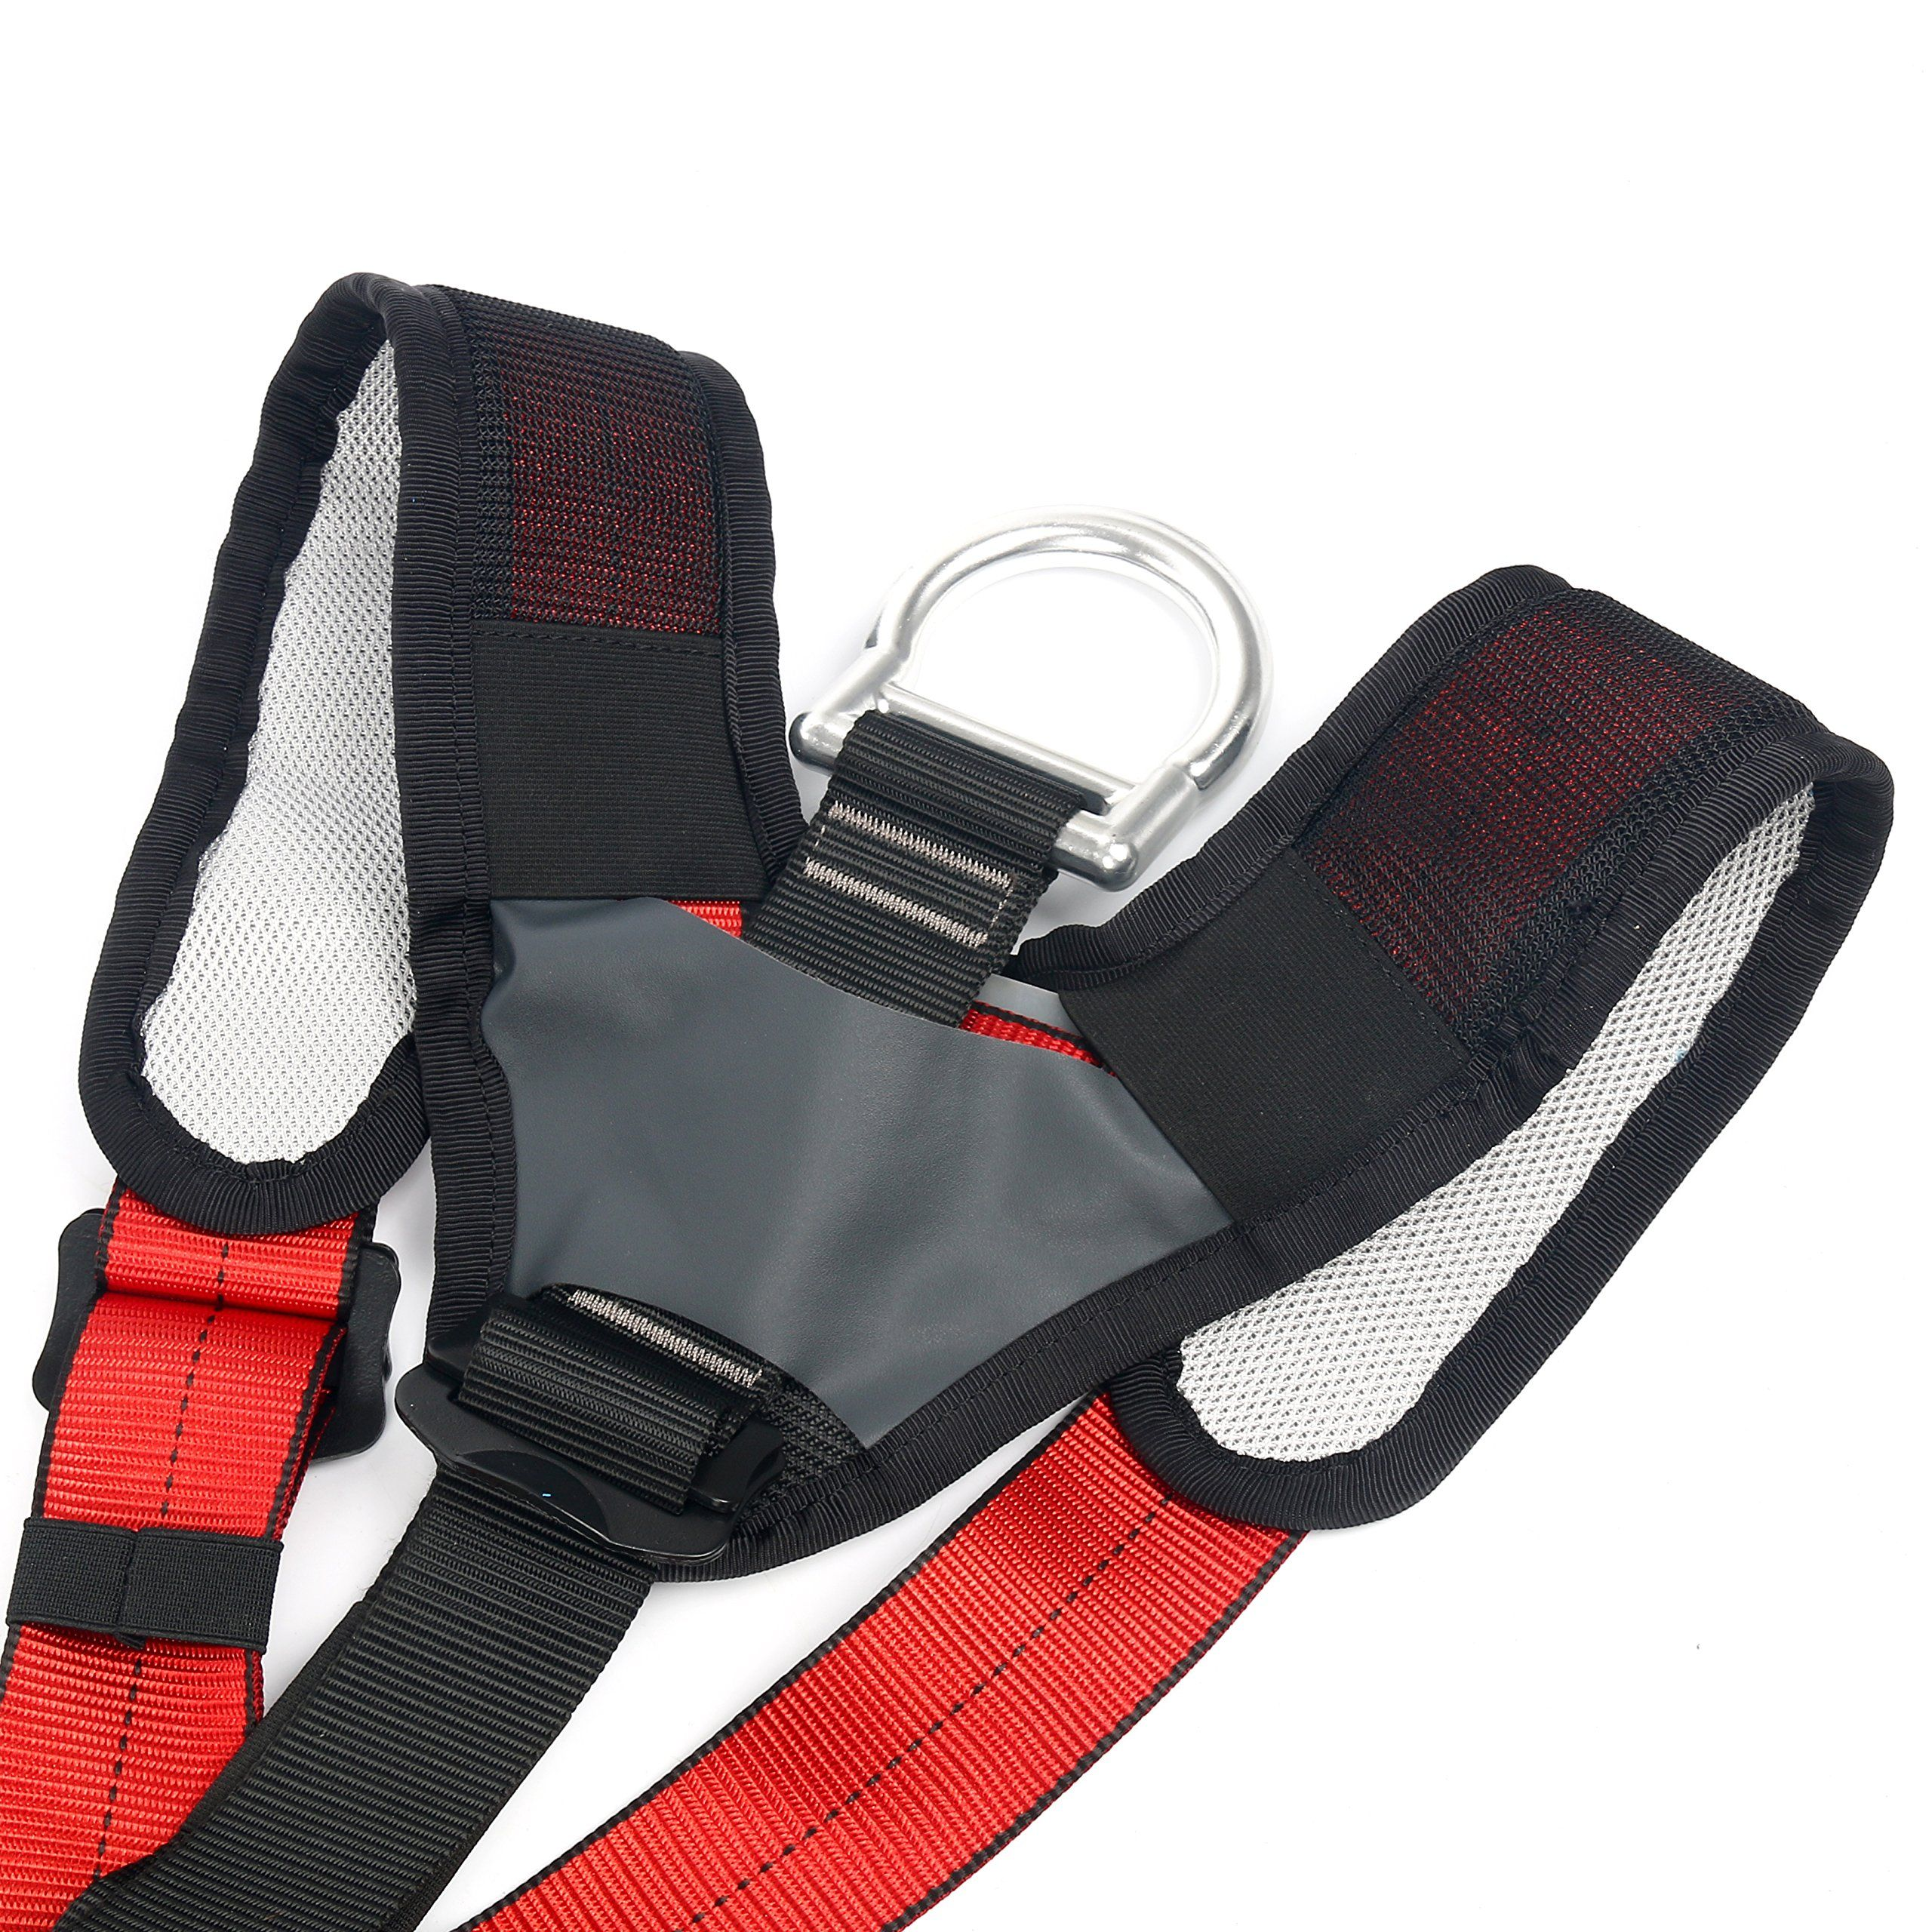 YaeTact Full Body Safety Harness Outdoor Climbing Momentum